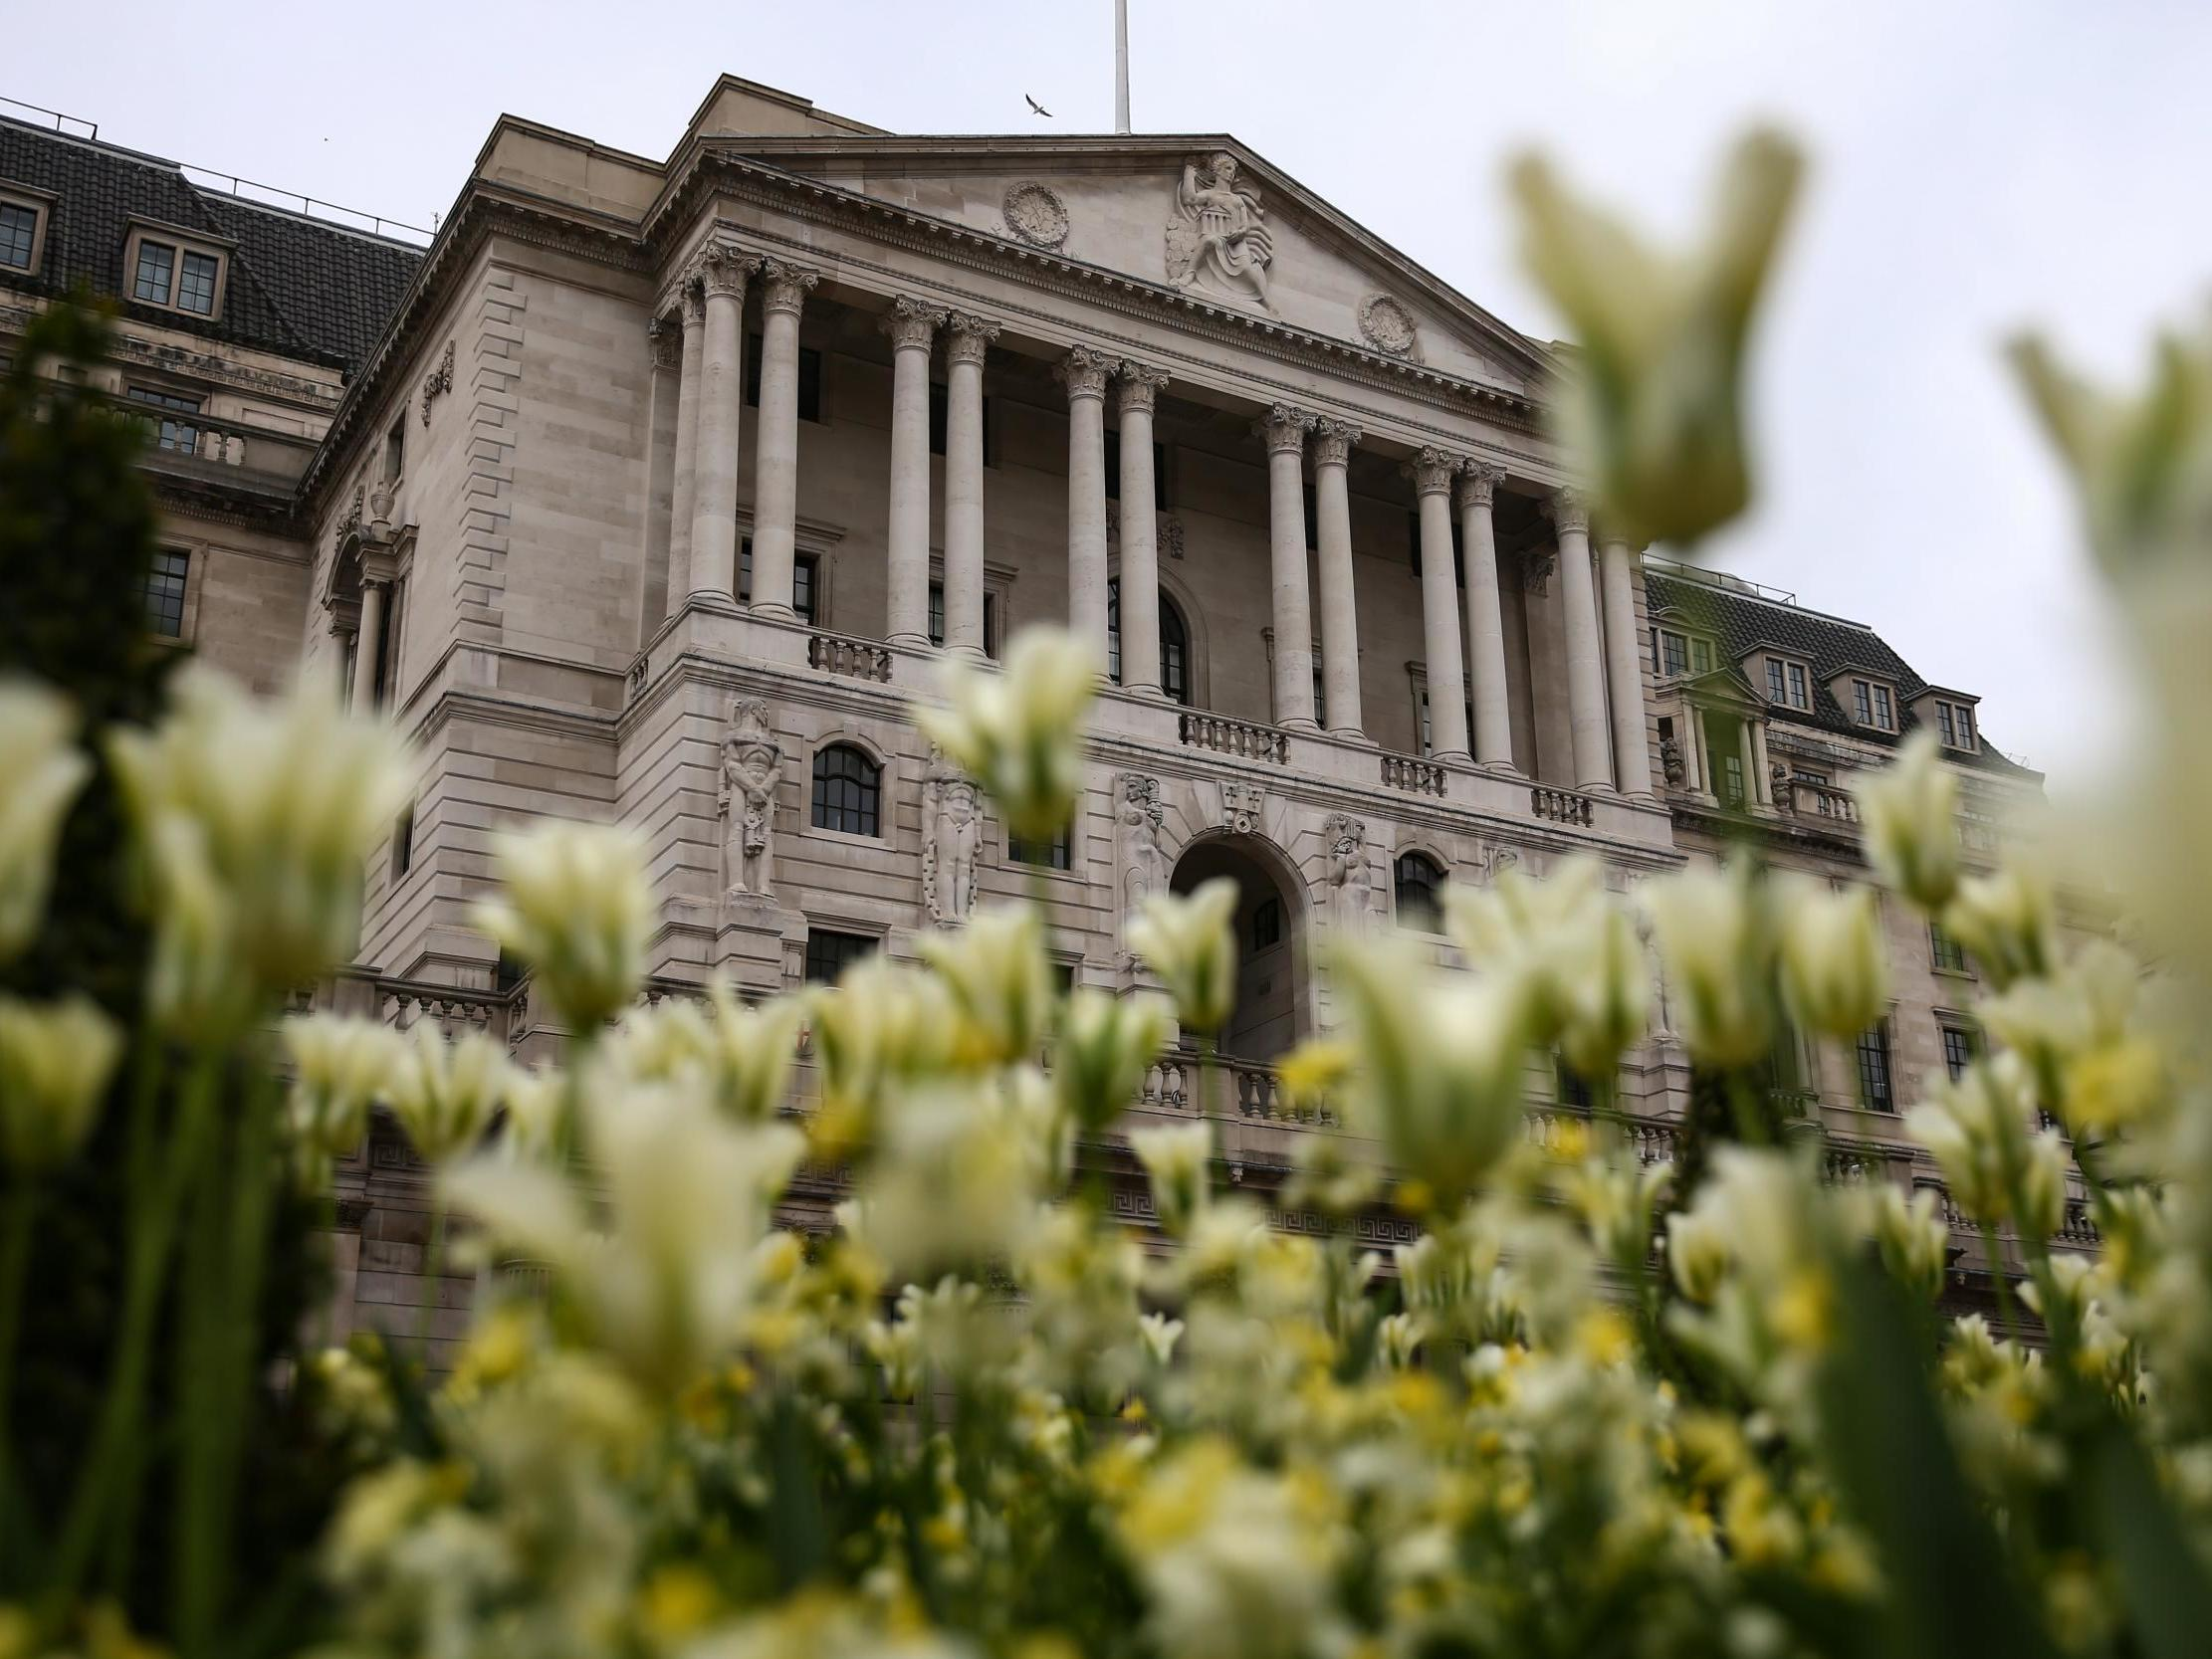 As crazy as it sounds, the Bank of England is looking on the bright side for the UK economy